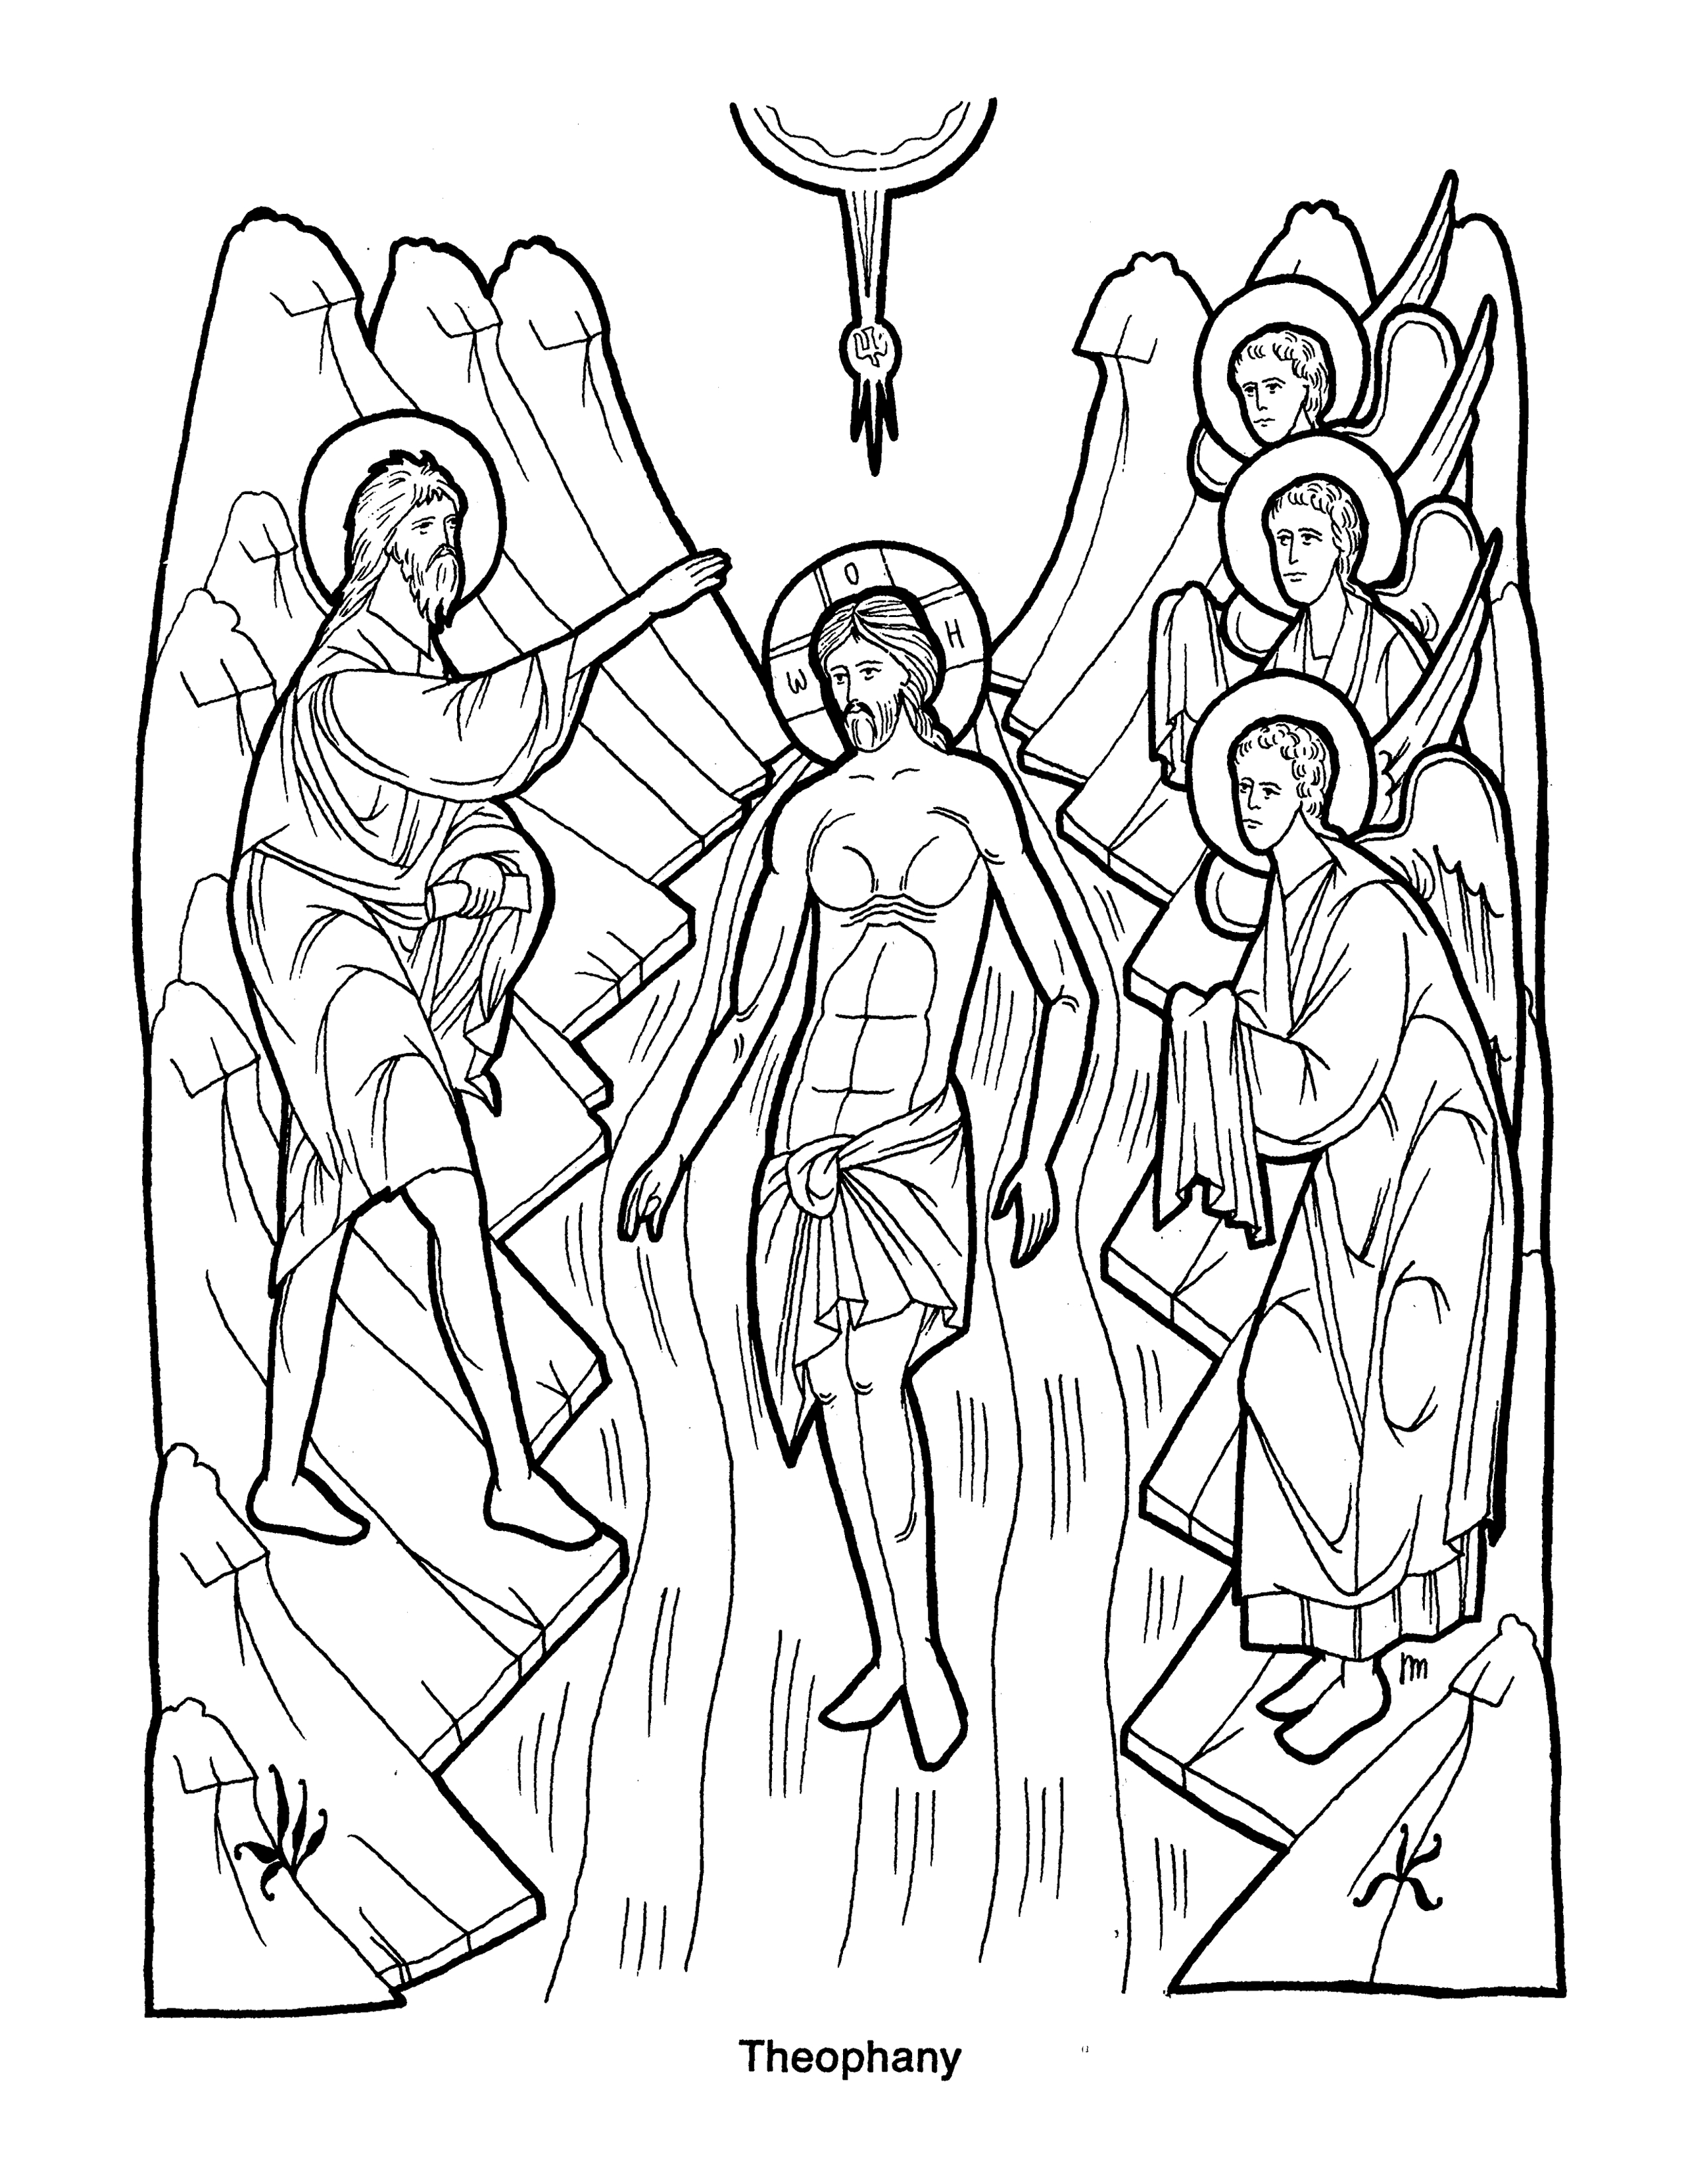 Catholic drawing pencil. Free coloring pages of